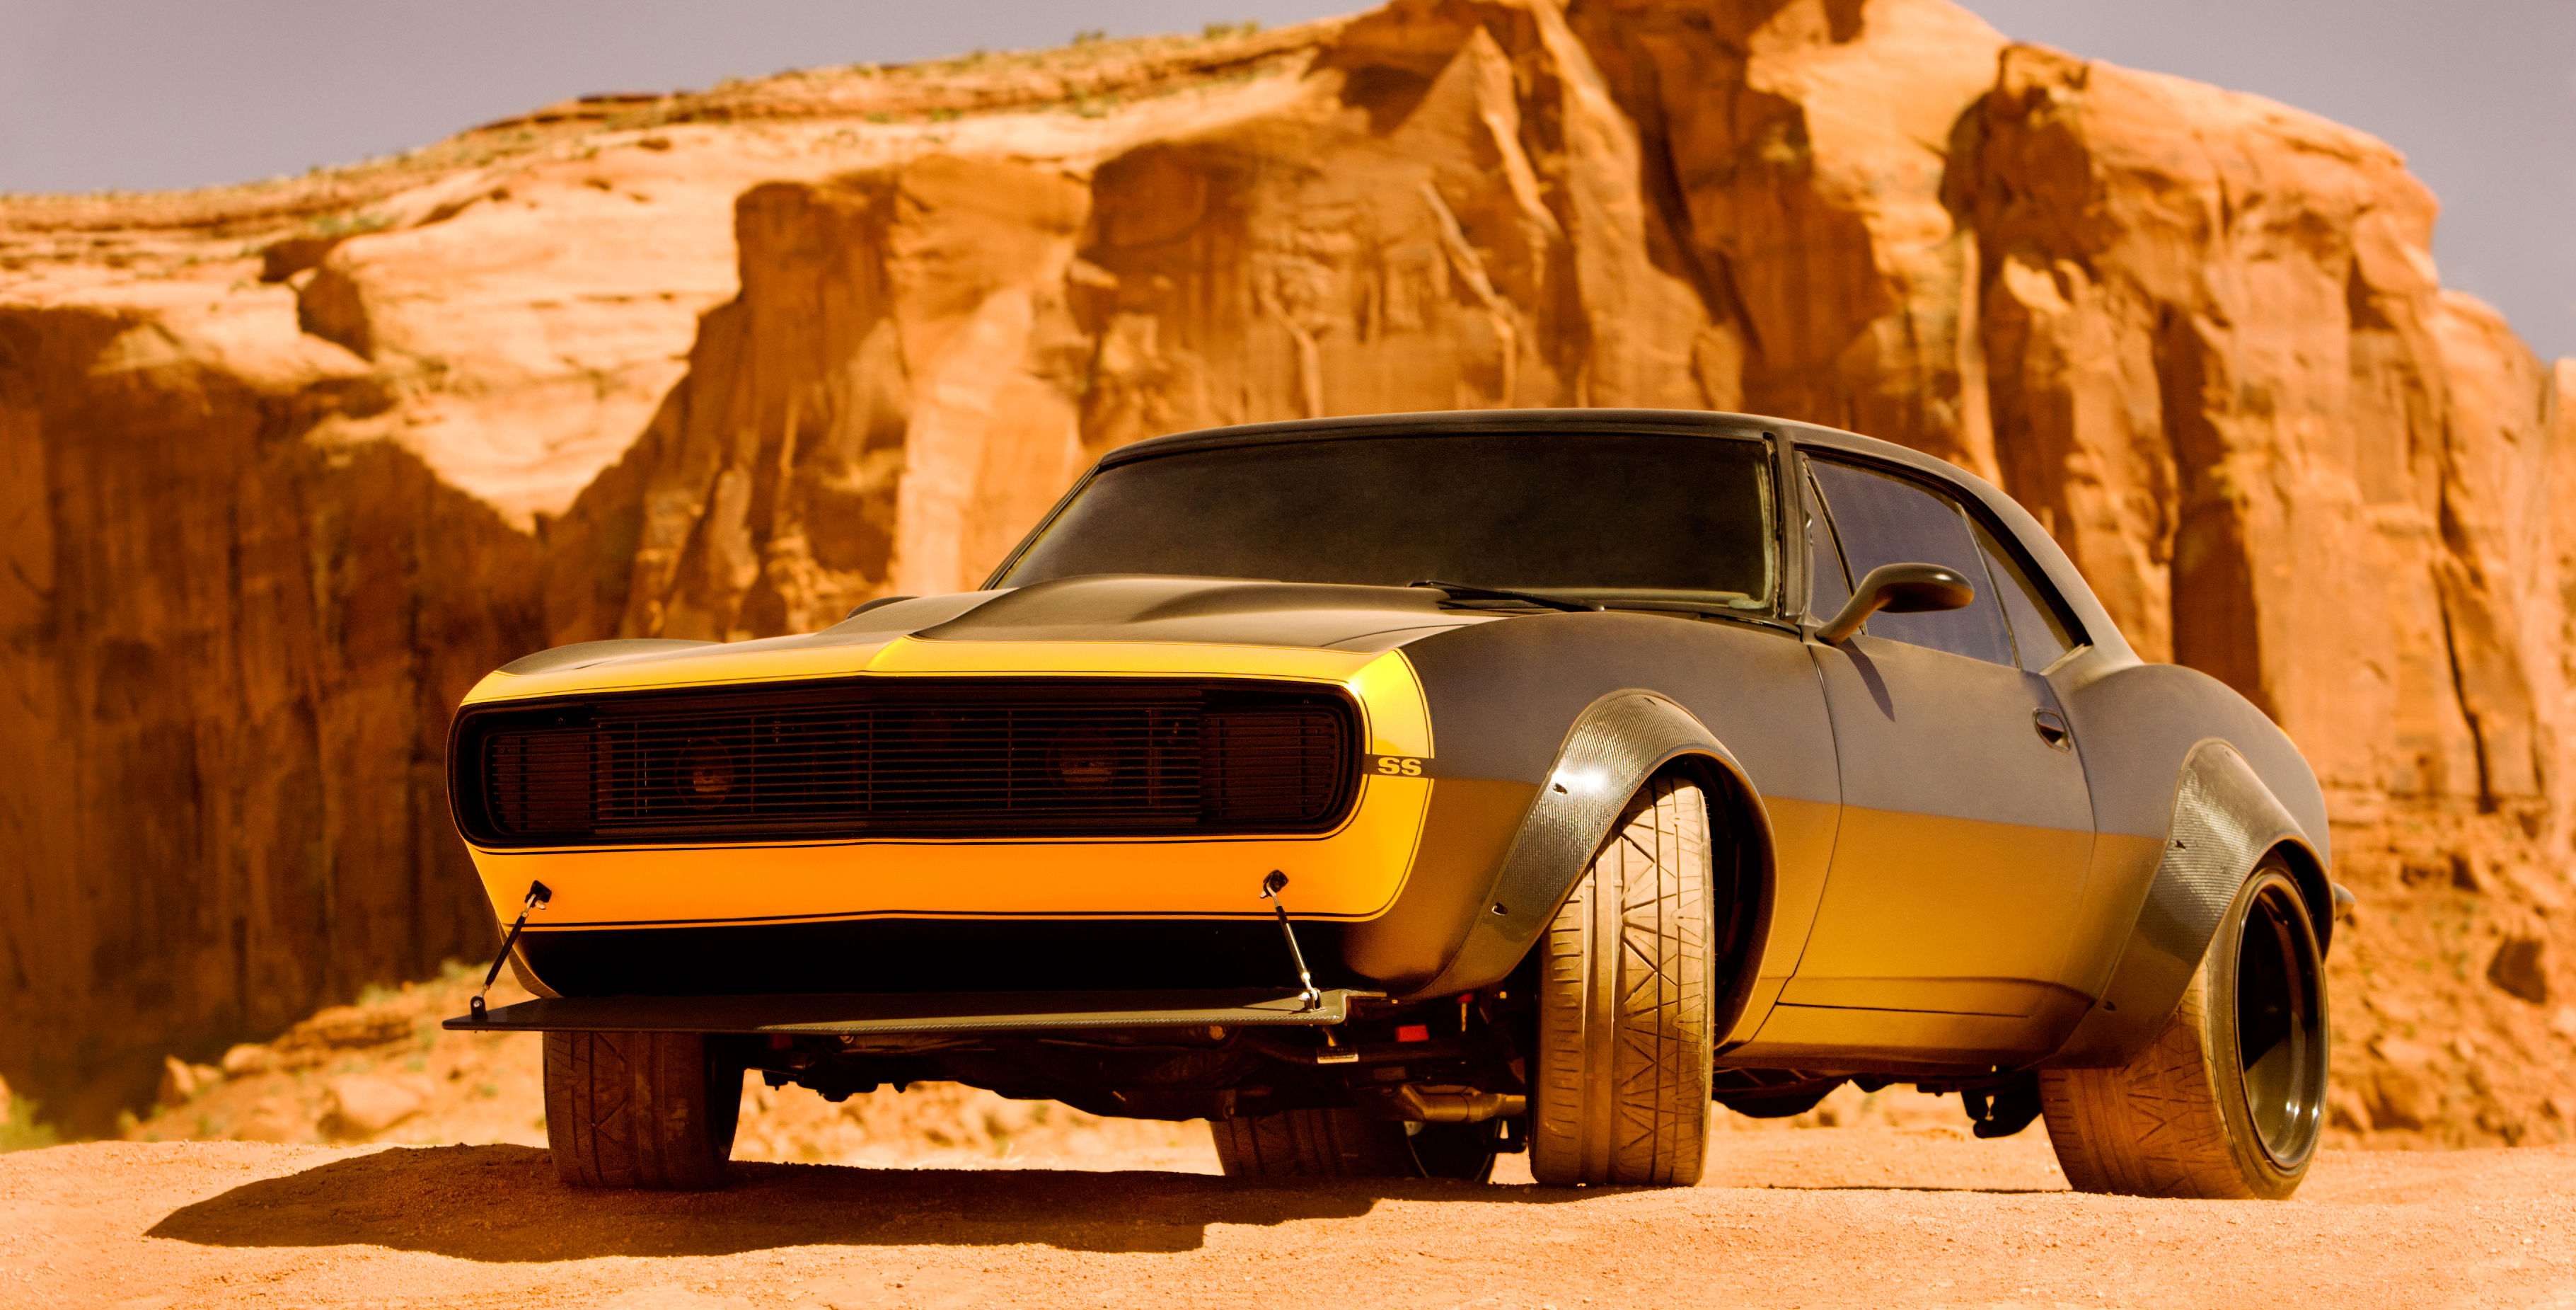 Bumblebee Gets Retro Look in 'Transformers 4' – /Film